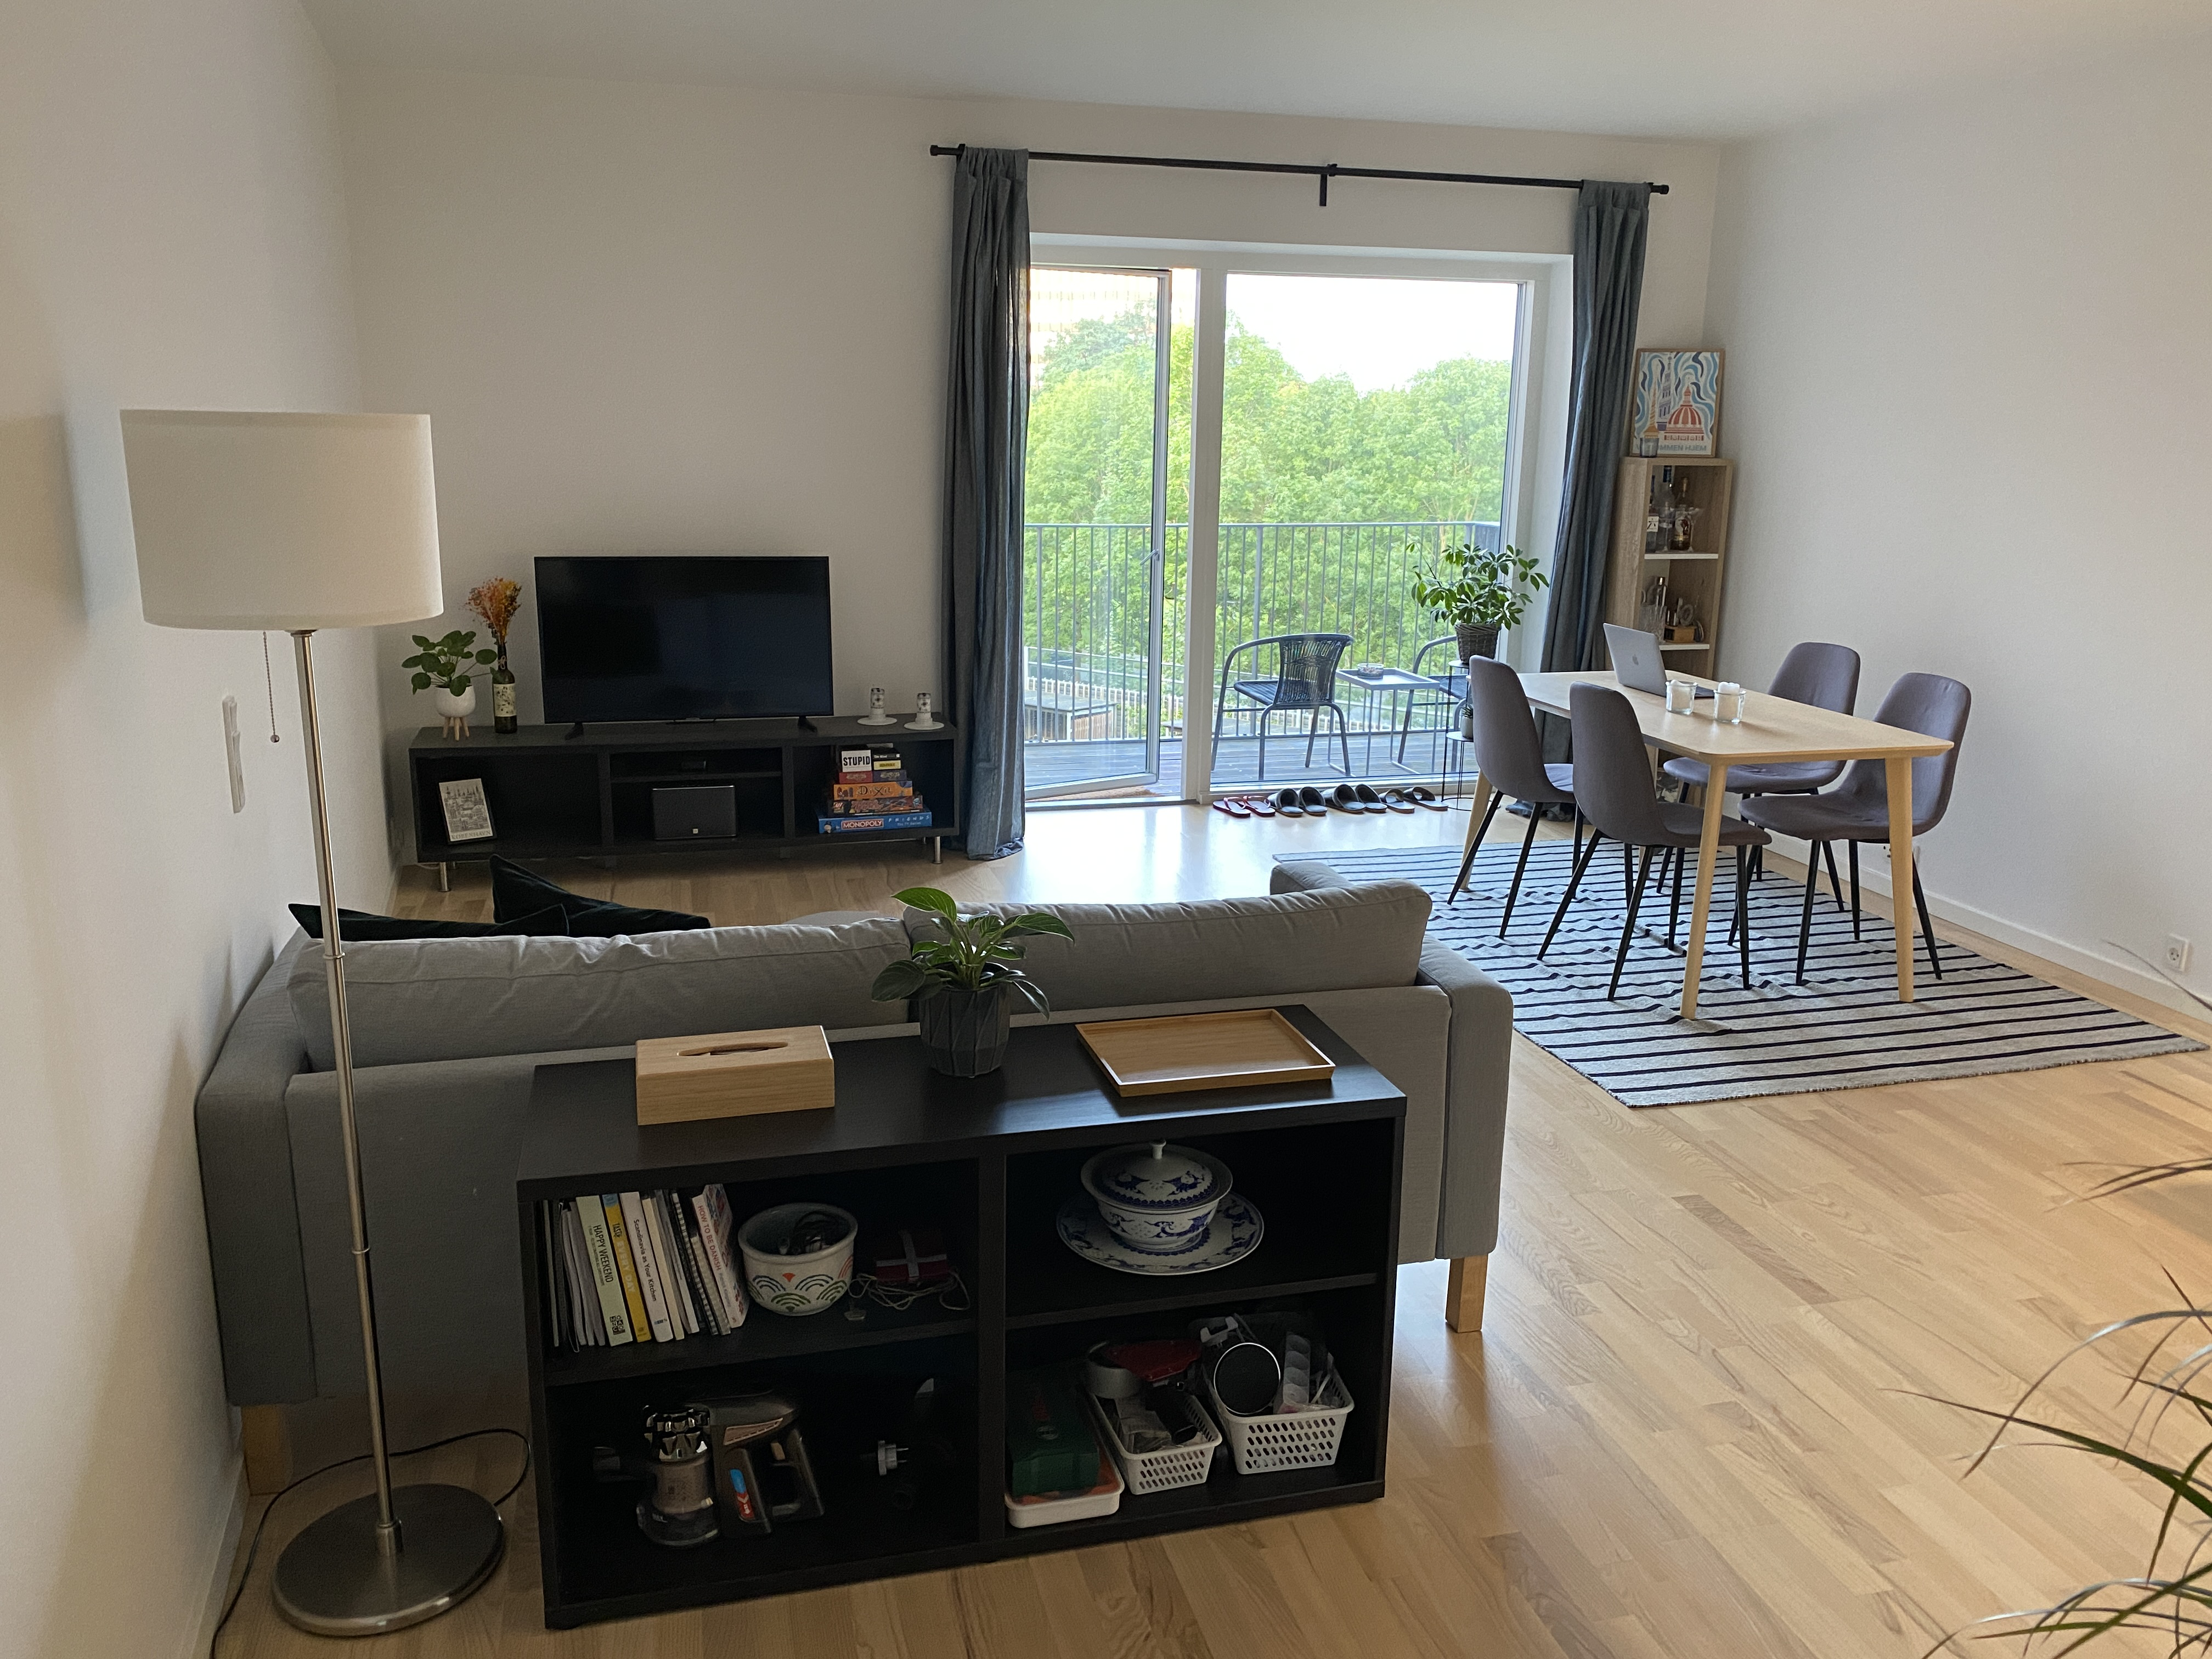 Shared apartment in Valby with a friendly flatmate